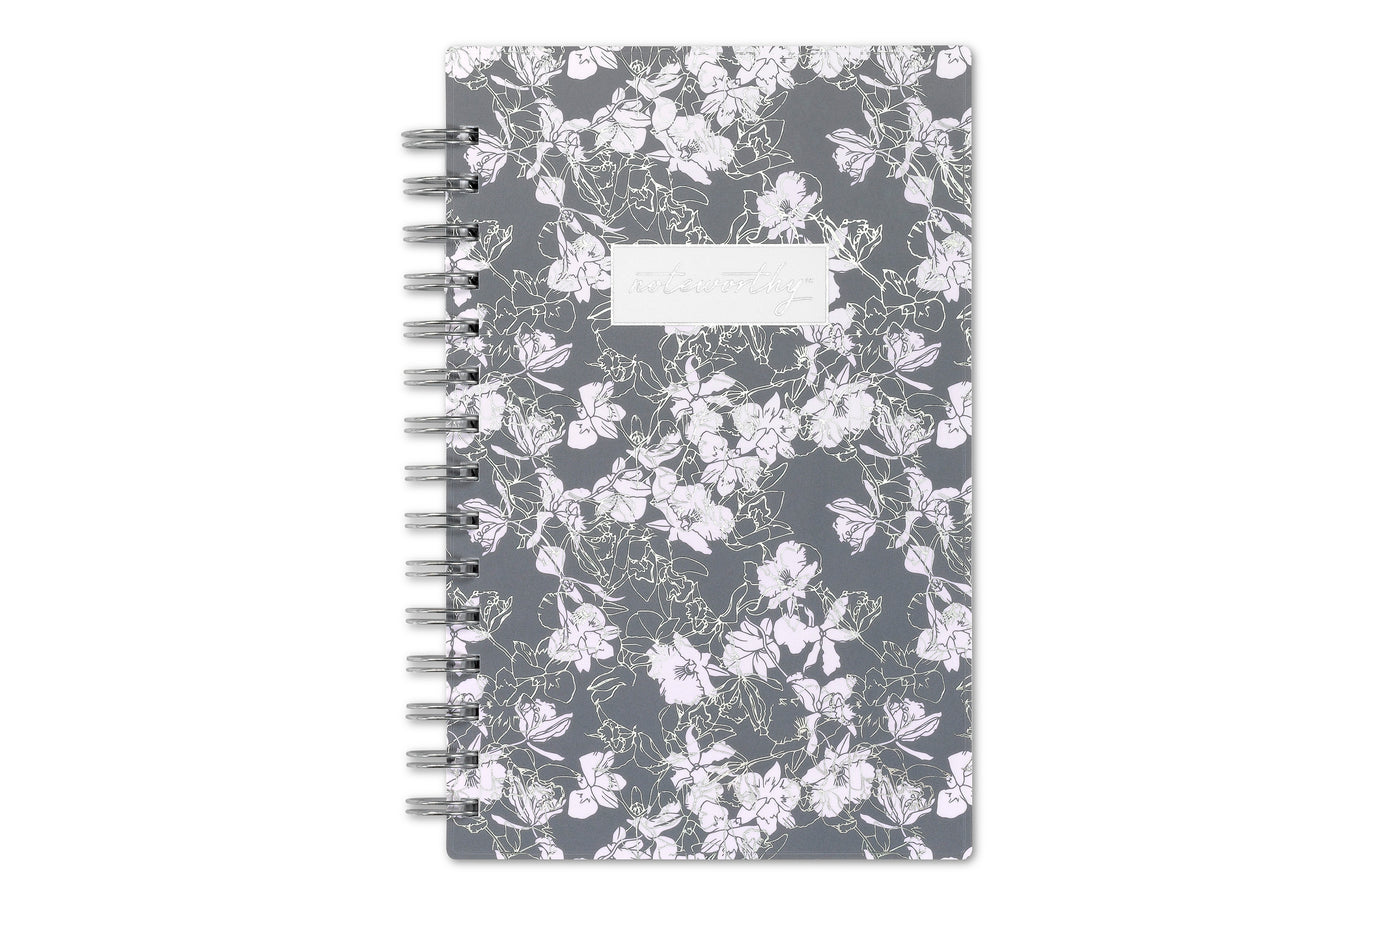 2020 noteworthy planner in floral design